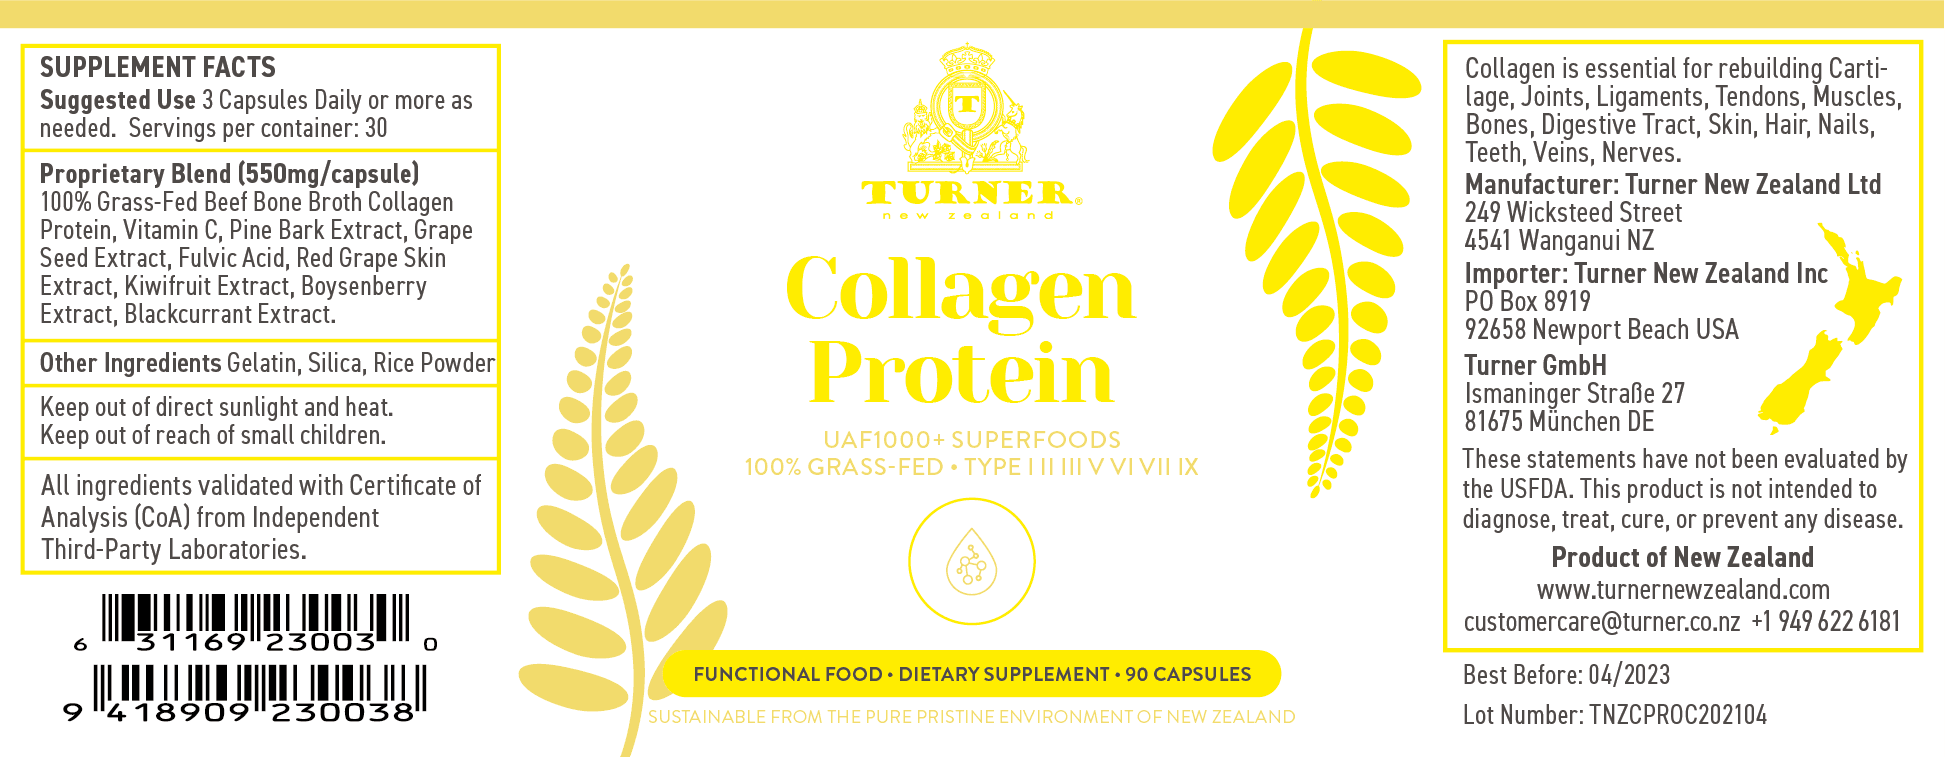 Collagen Protein - TURNER New Zealand